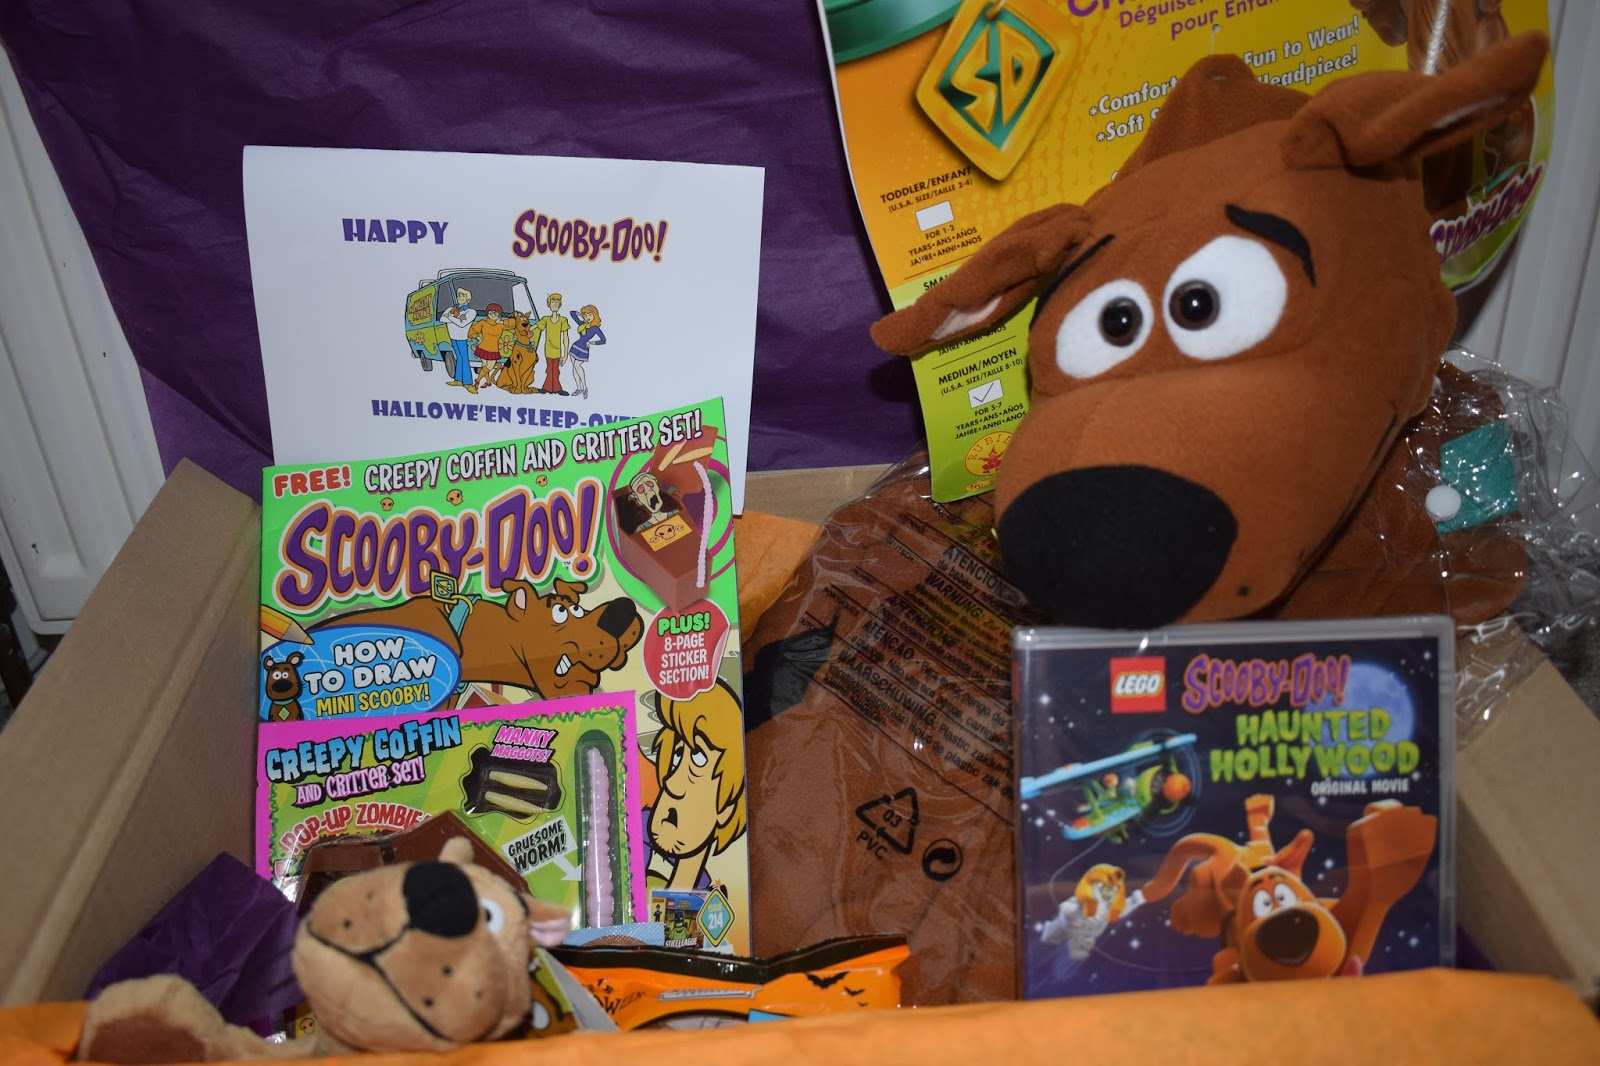 we have been sent a super cool box of scooby doo goodies to celebrate the children were delighted when the box arrived and couldnt wait to find out what